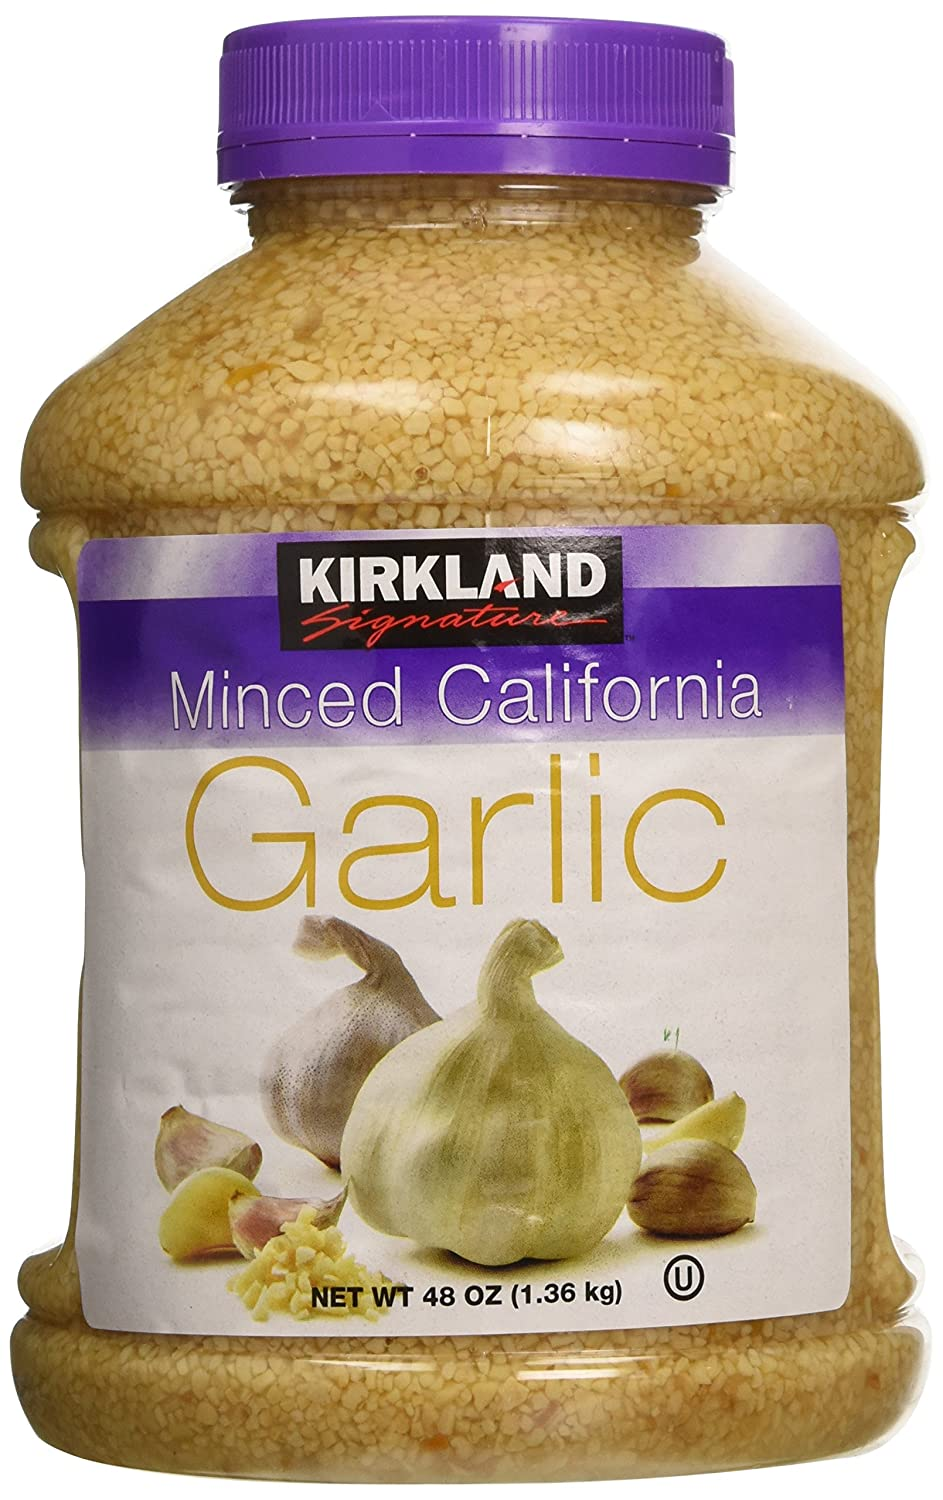 Kirkland Signature Minced California Garlic, 48 Ounce